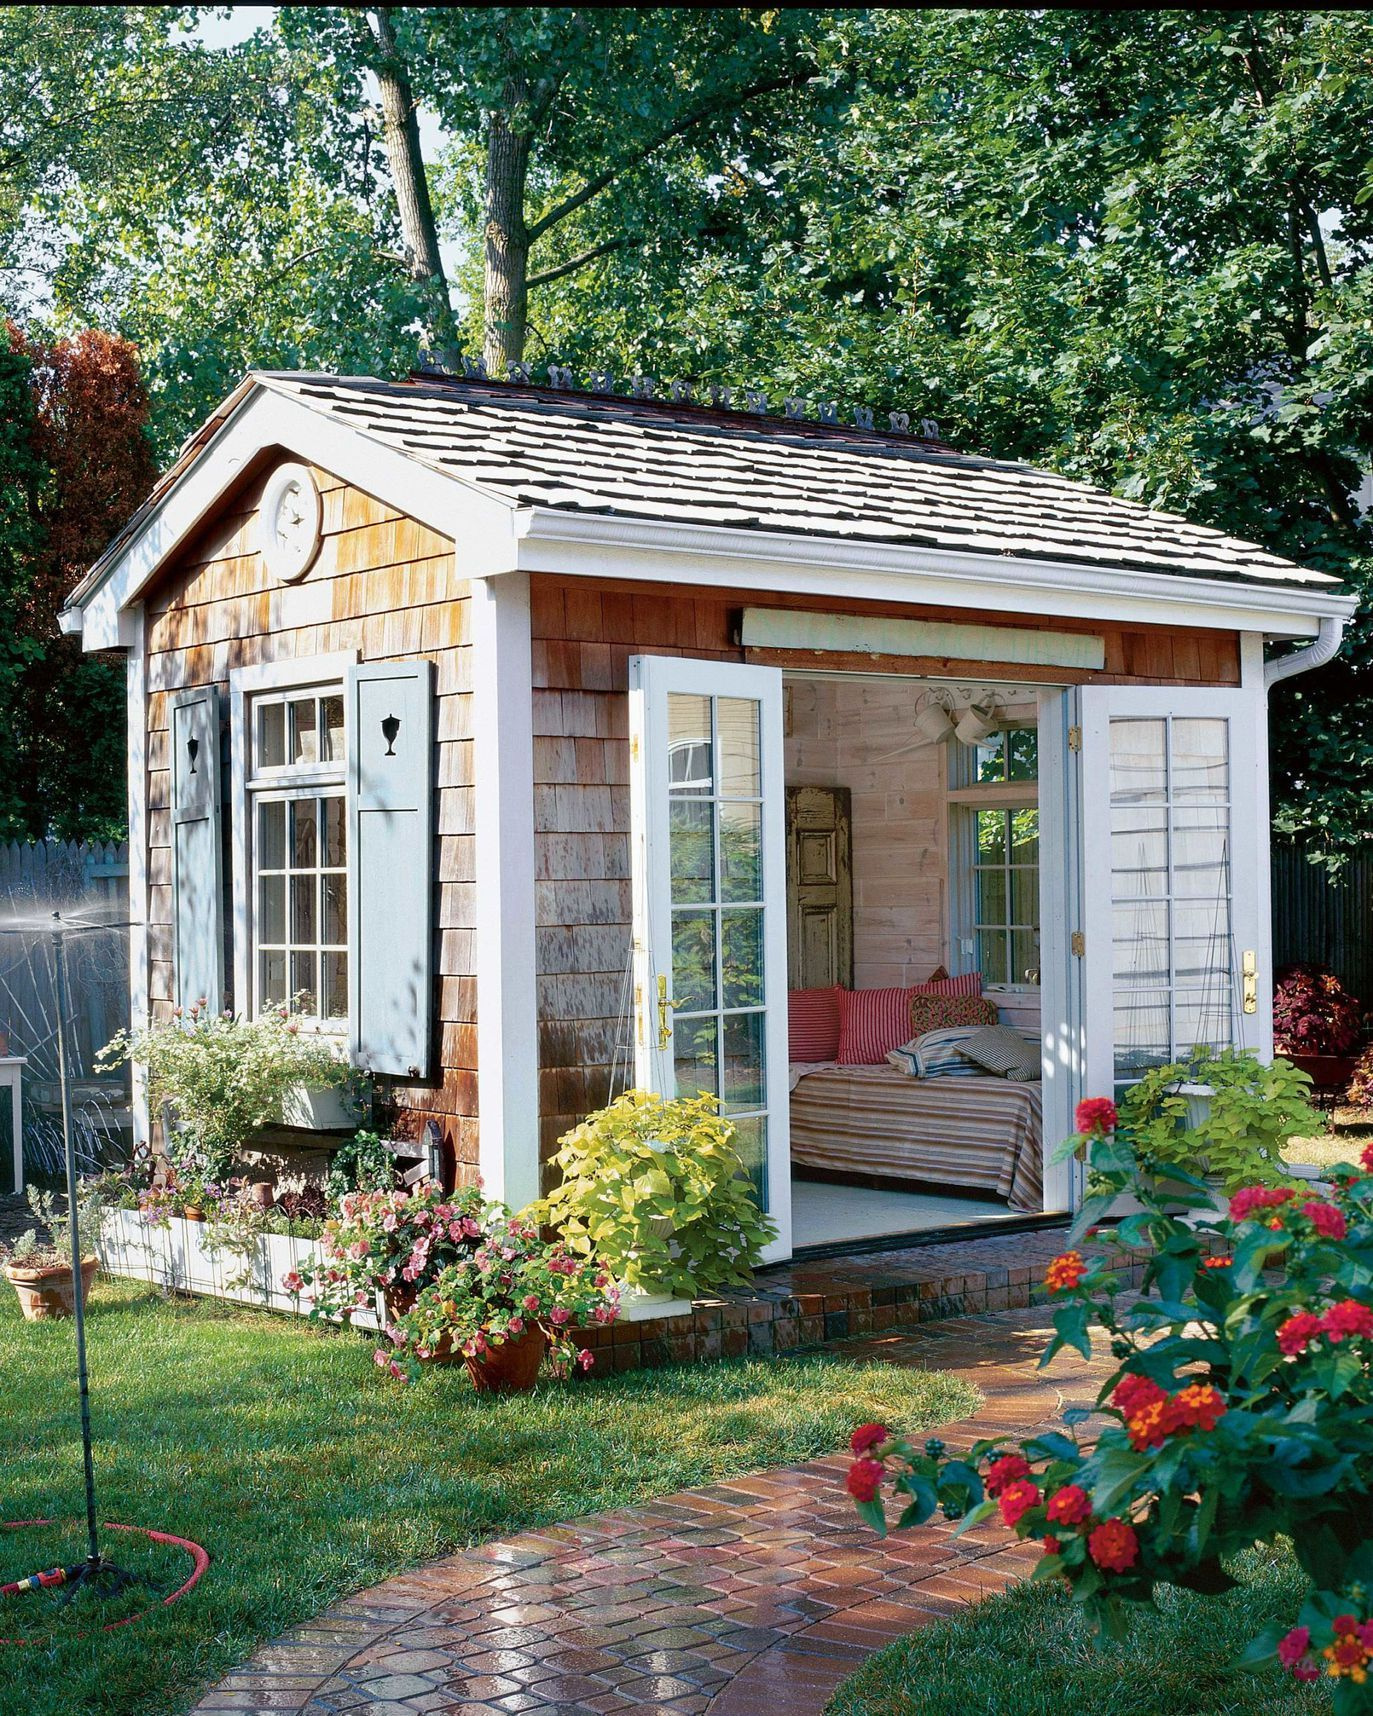 17 Charming She Sheds To Inspire Your Own Backyard Getaway